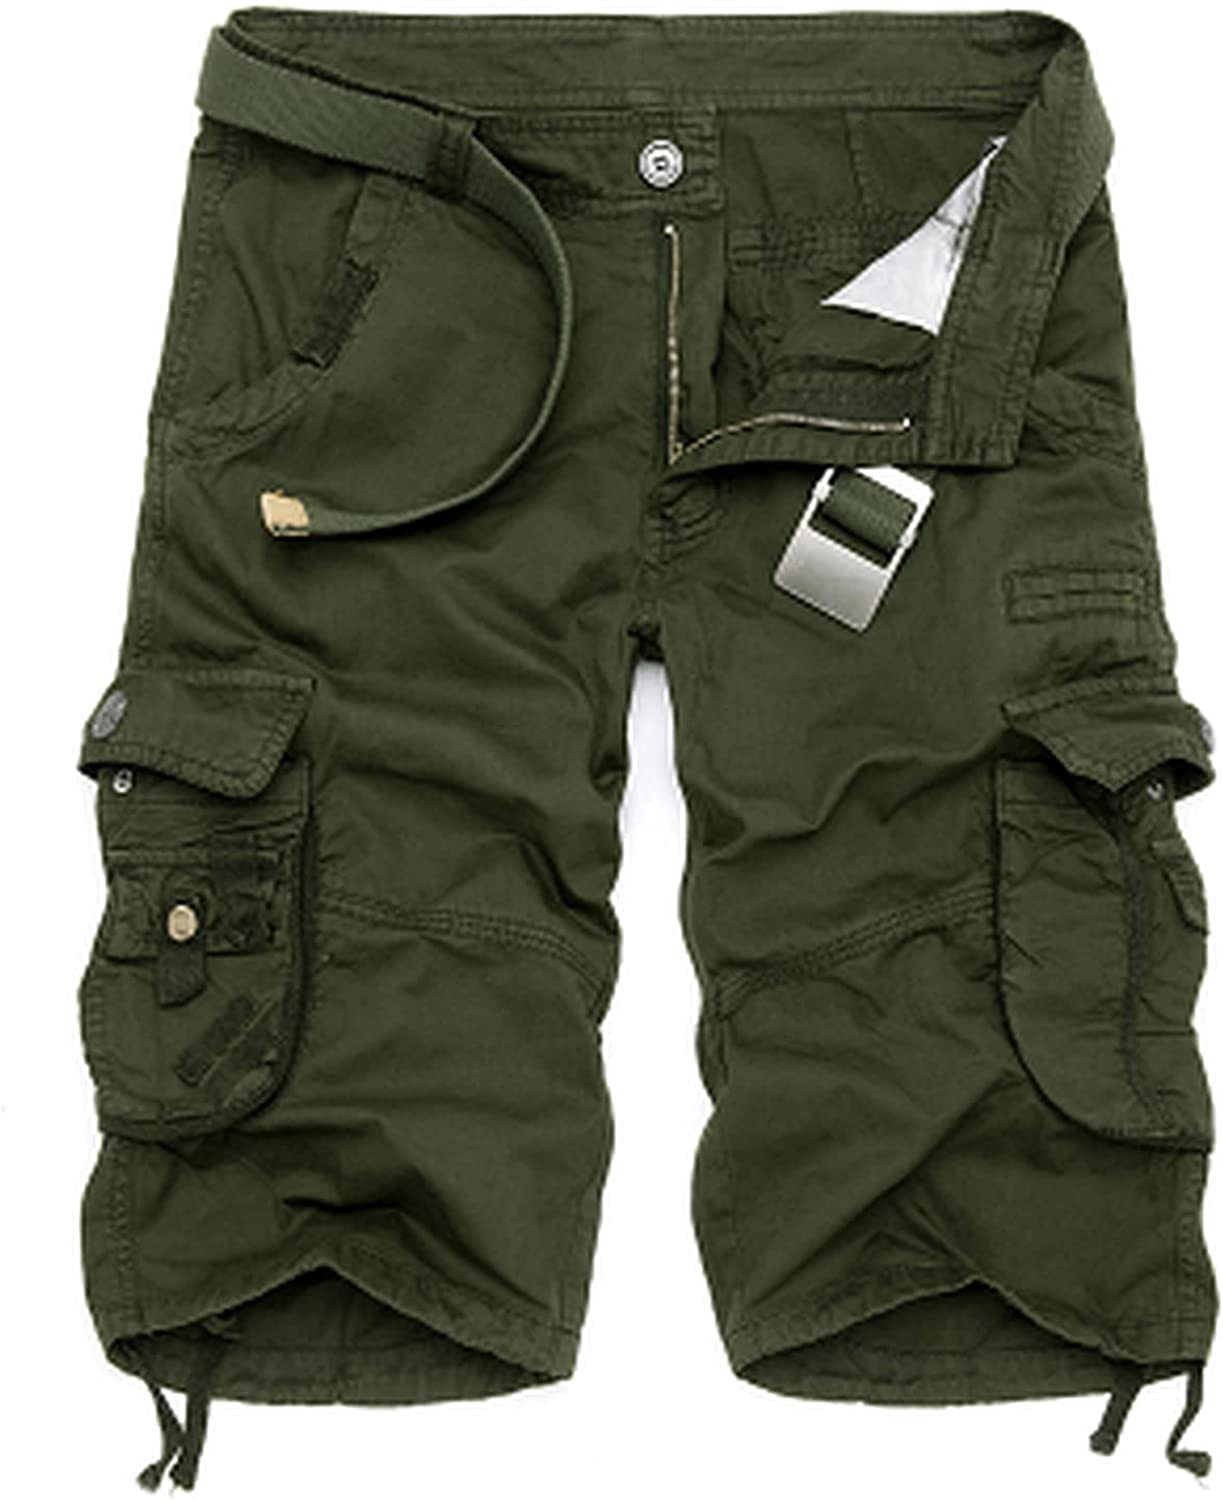 Lanng Mens Military Cargo Shorts New Army Camouflage Tactical Men Cotton Loose Work Casual Short Pants Plus Size